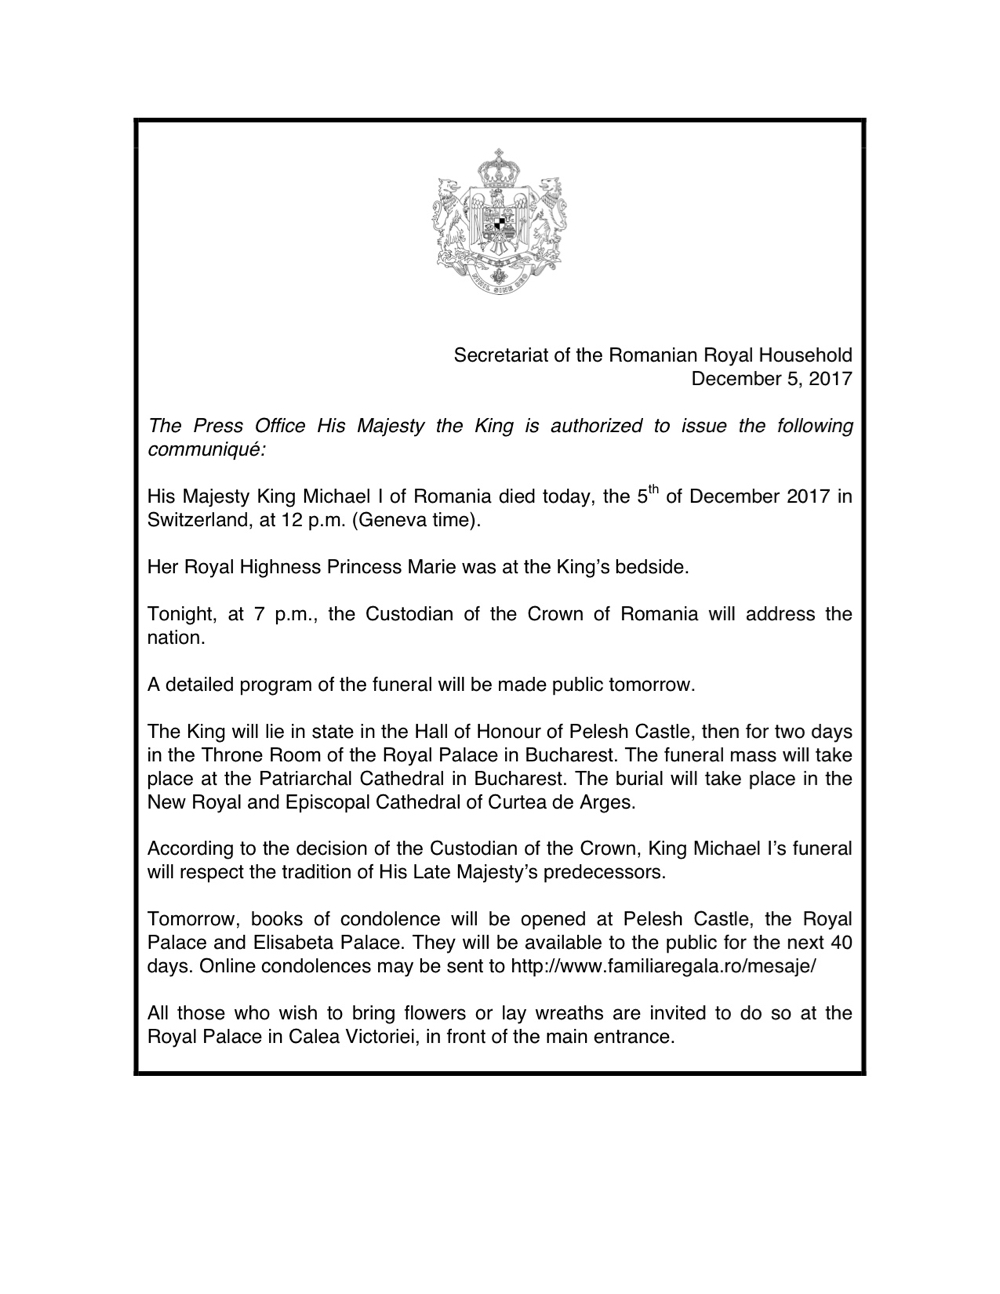 Death Announcement King Michael of Romania